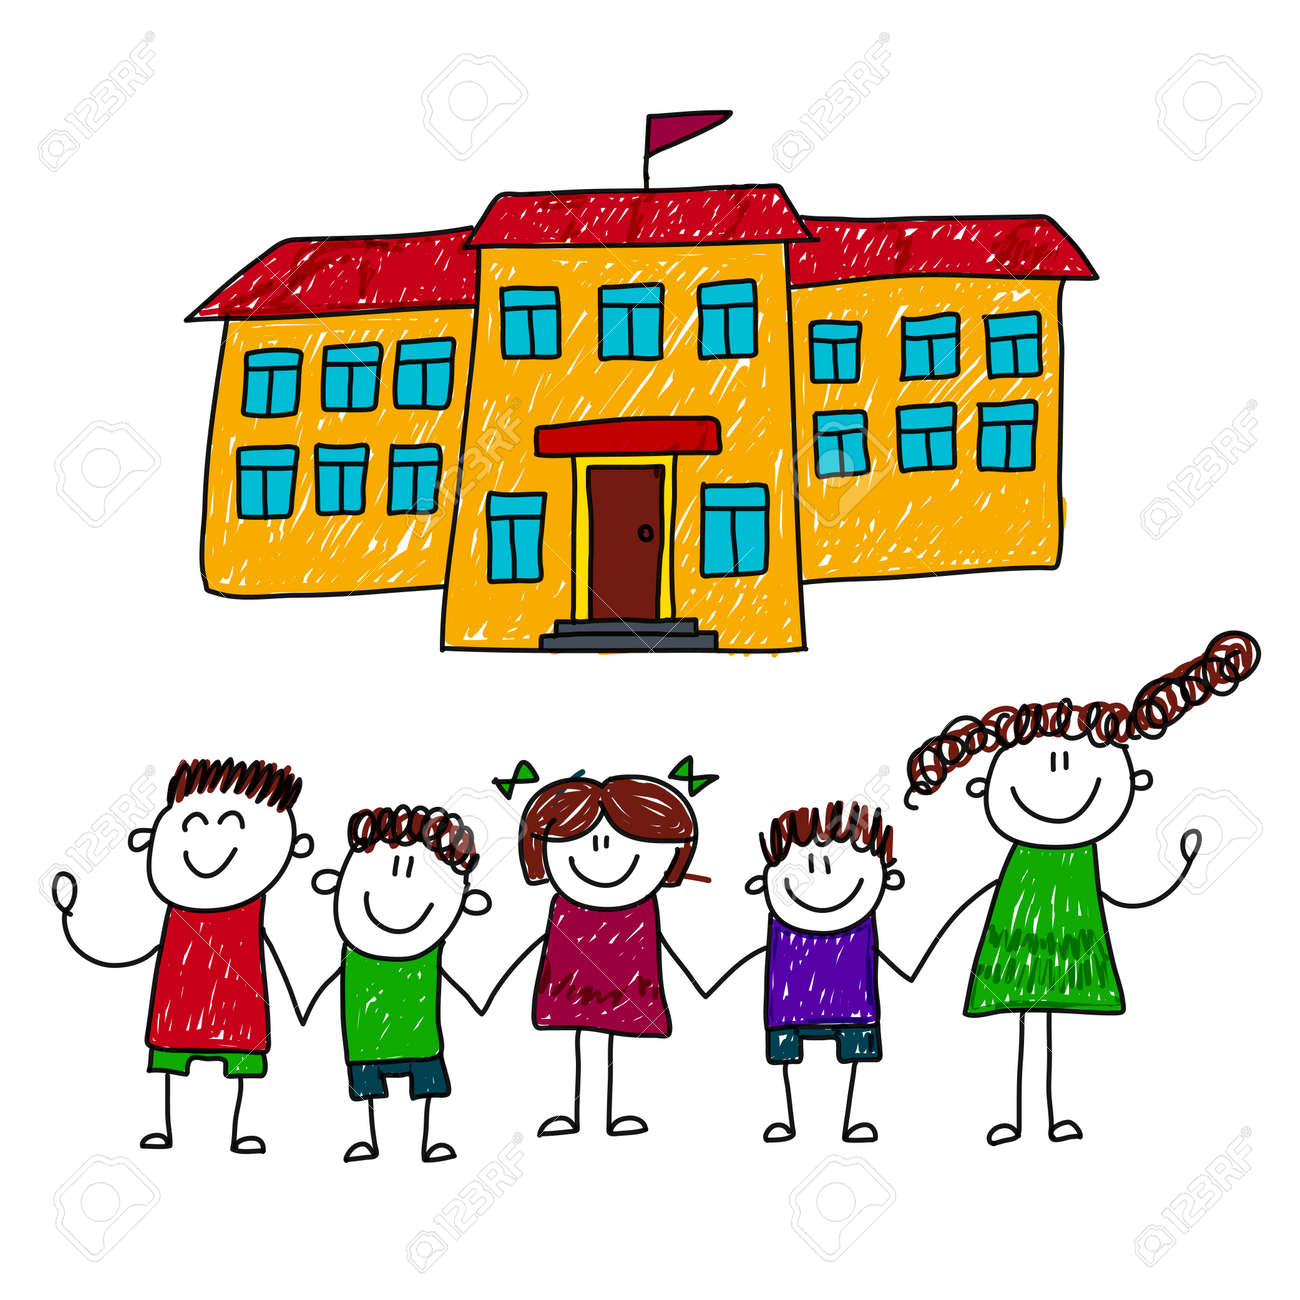 Illustration Of Happy Children At School Yard Kids Drawing Royalty Free Cliparts Vectors And Stock Illustration Image 48793179